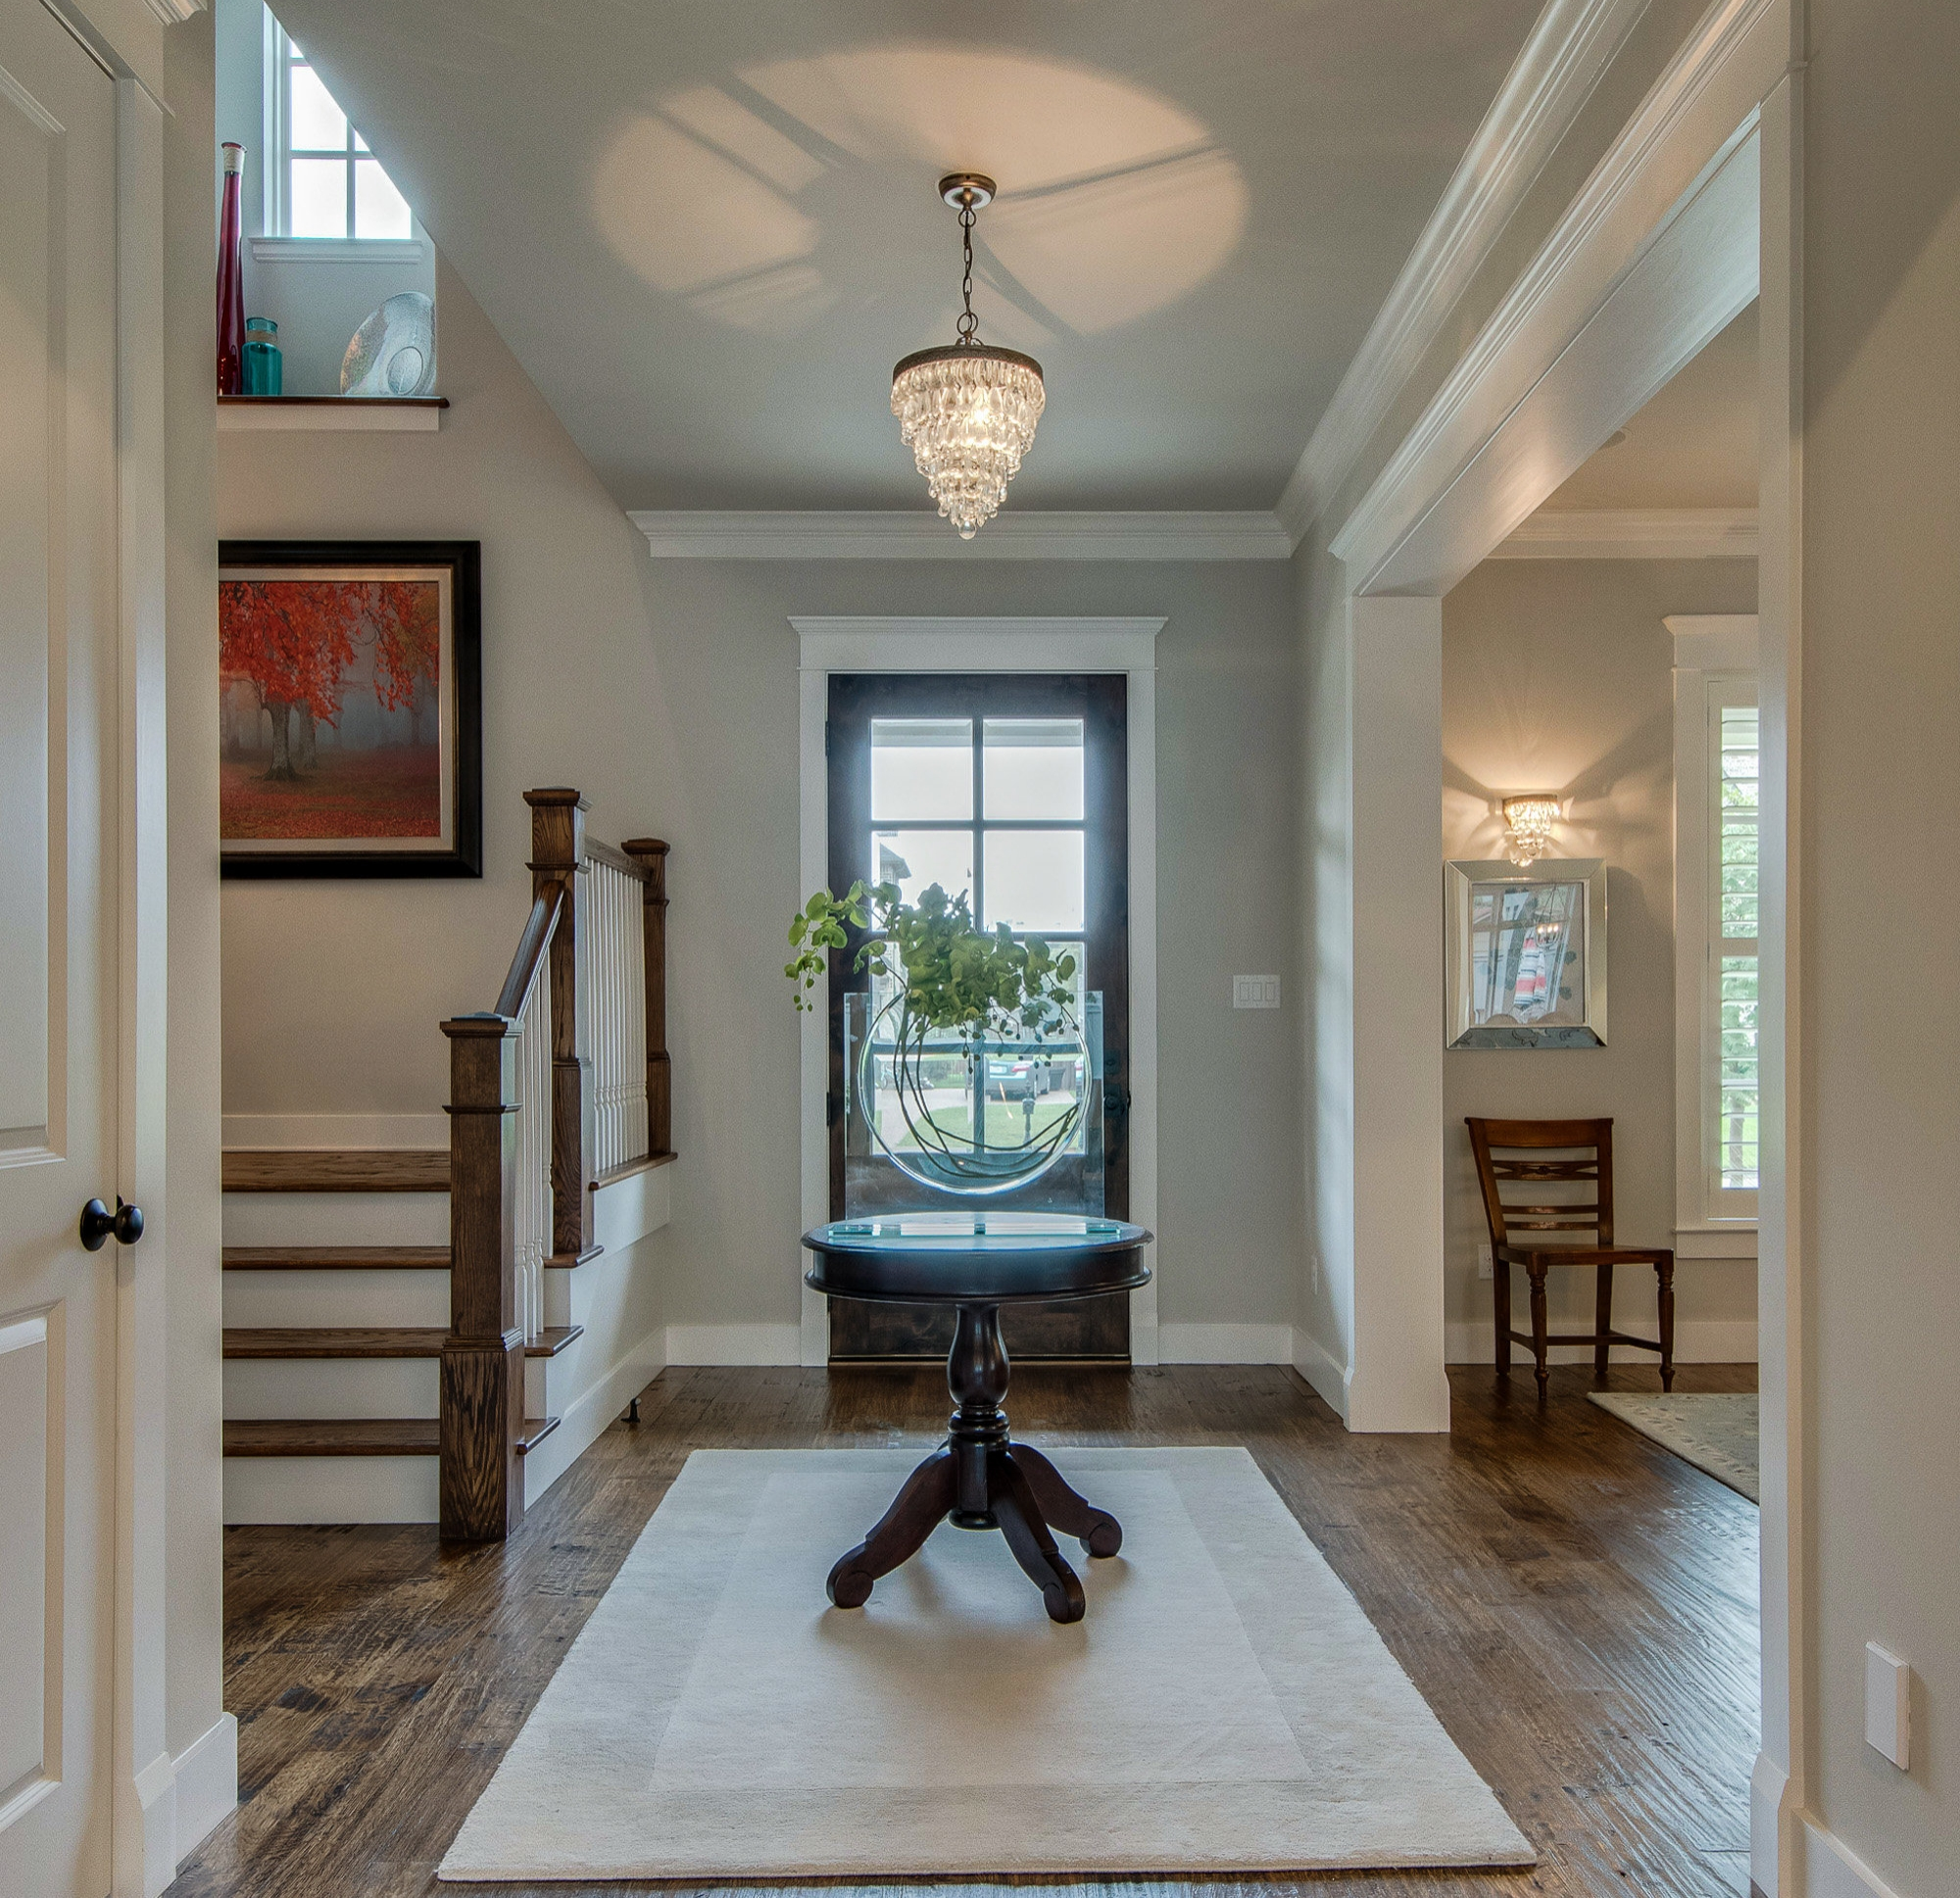 Home remodeling by RHR Builders in DFW